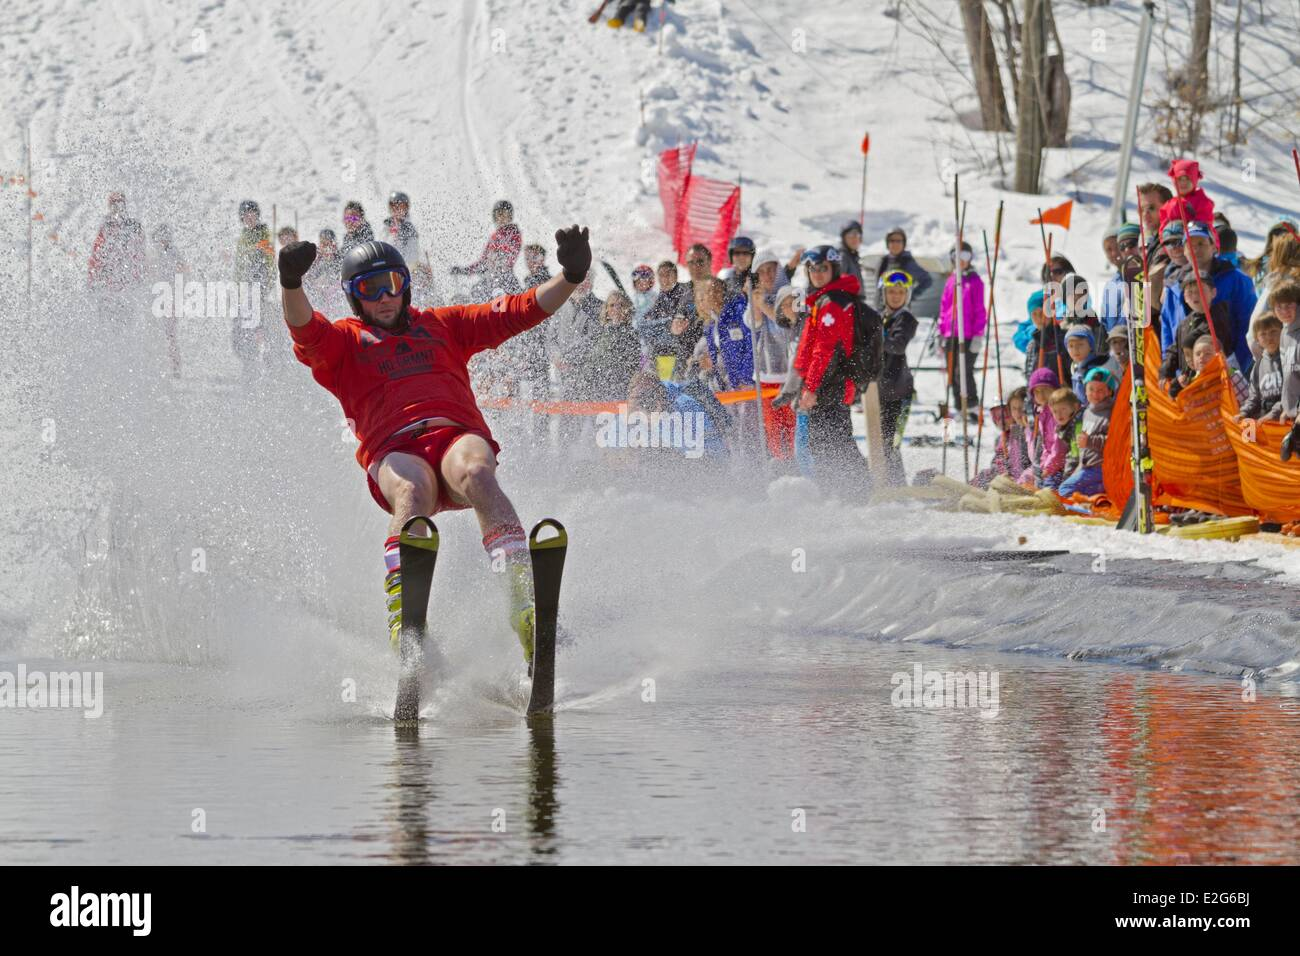 Canada Quebec province the Laurentians Morin Heights spring skiing event crossing the pond with ski - Stock Image